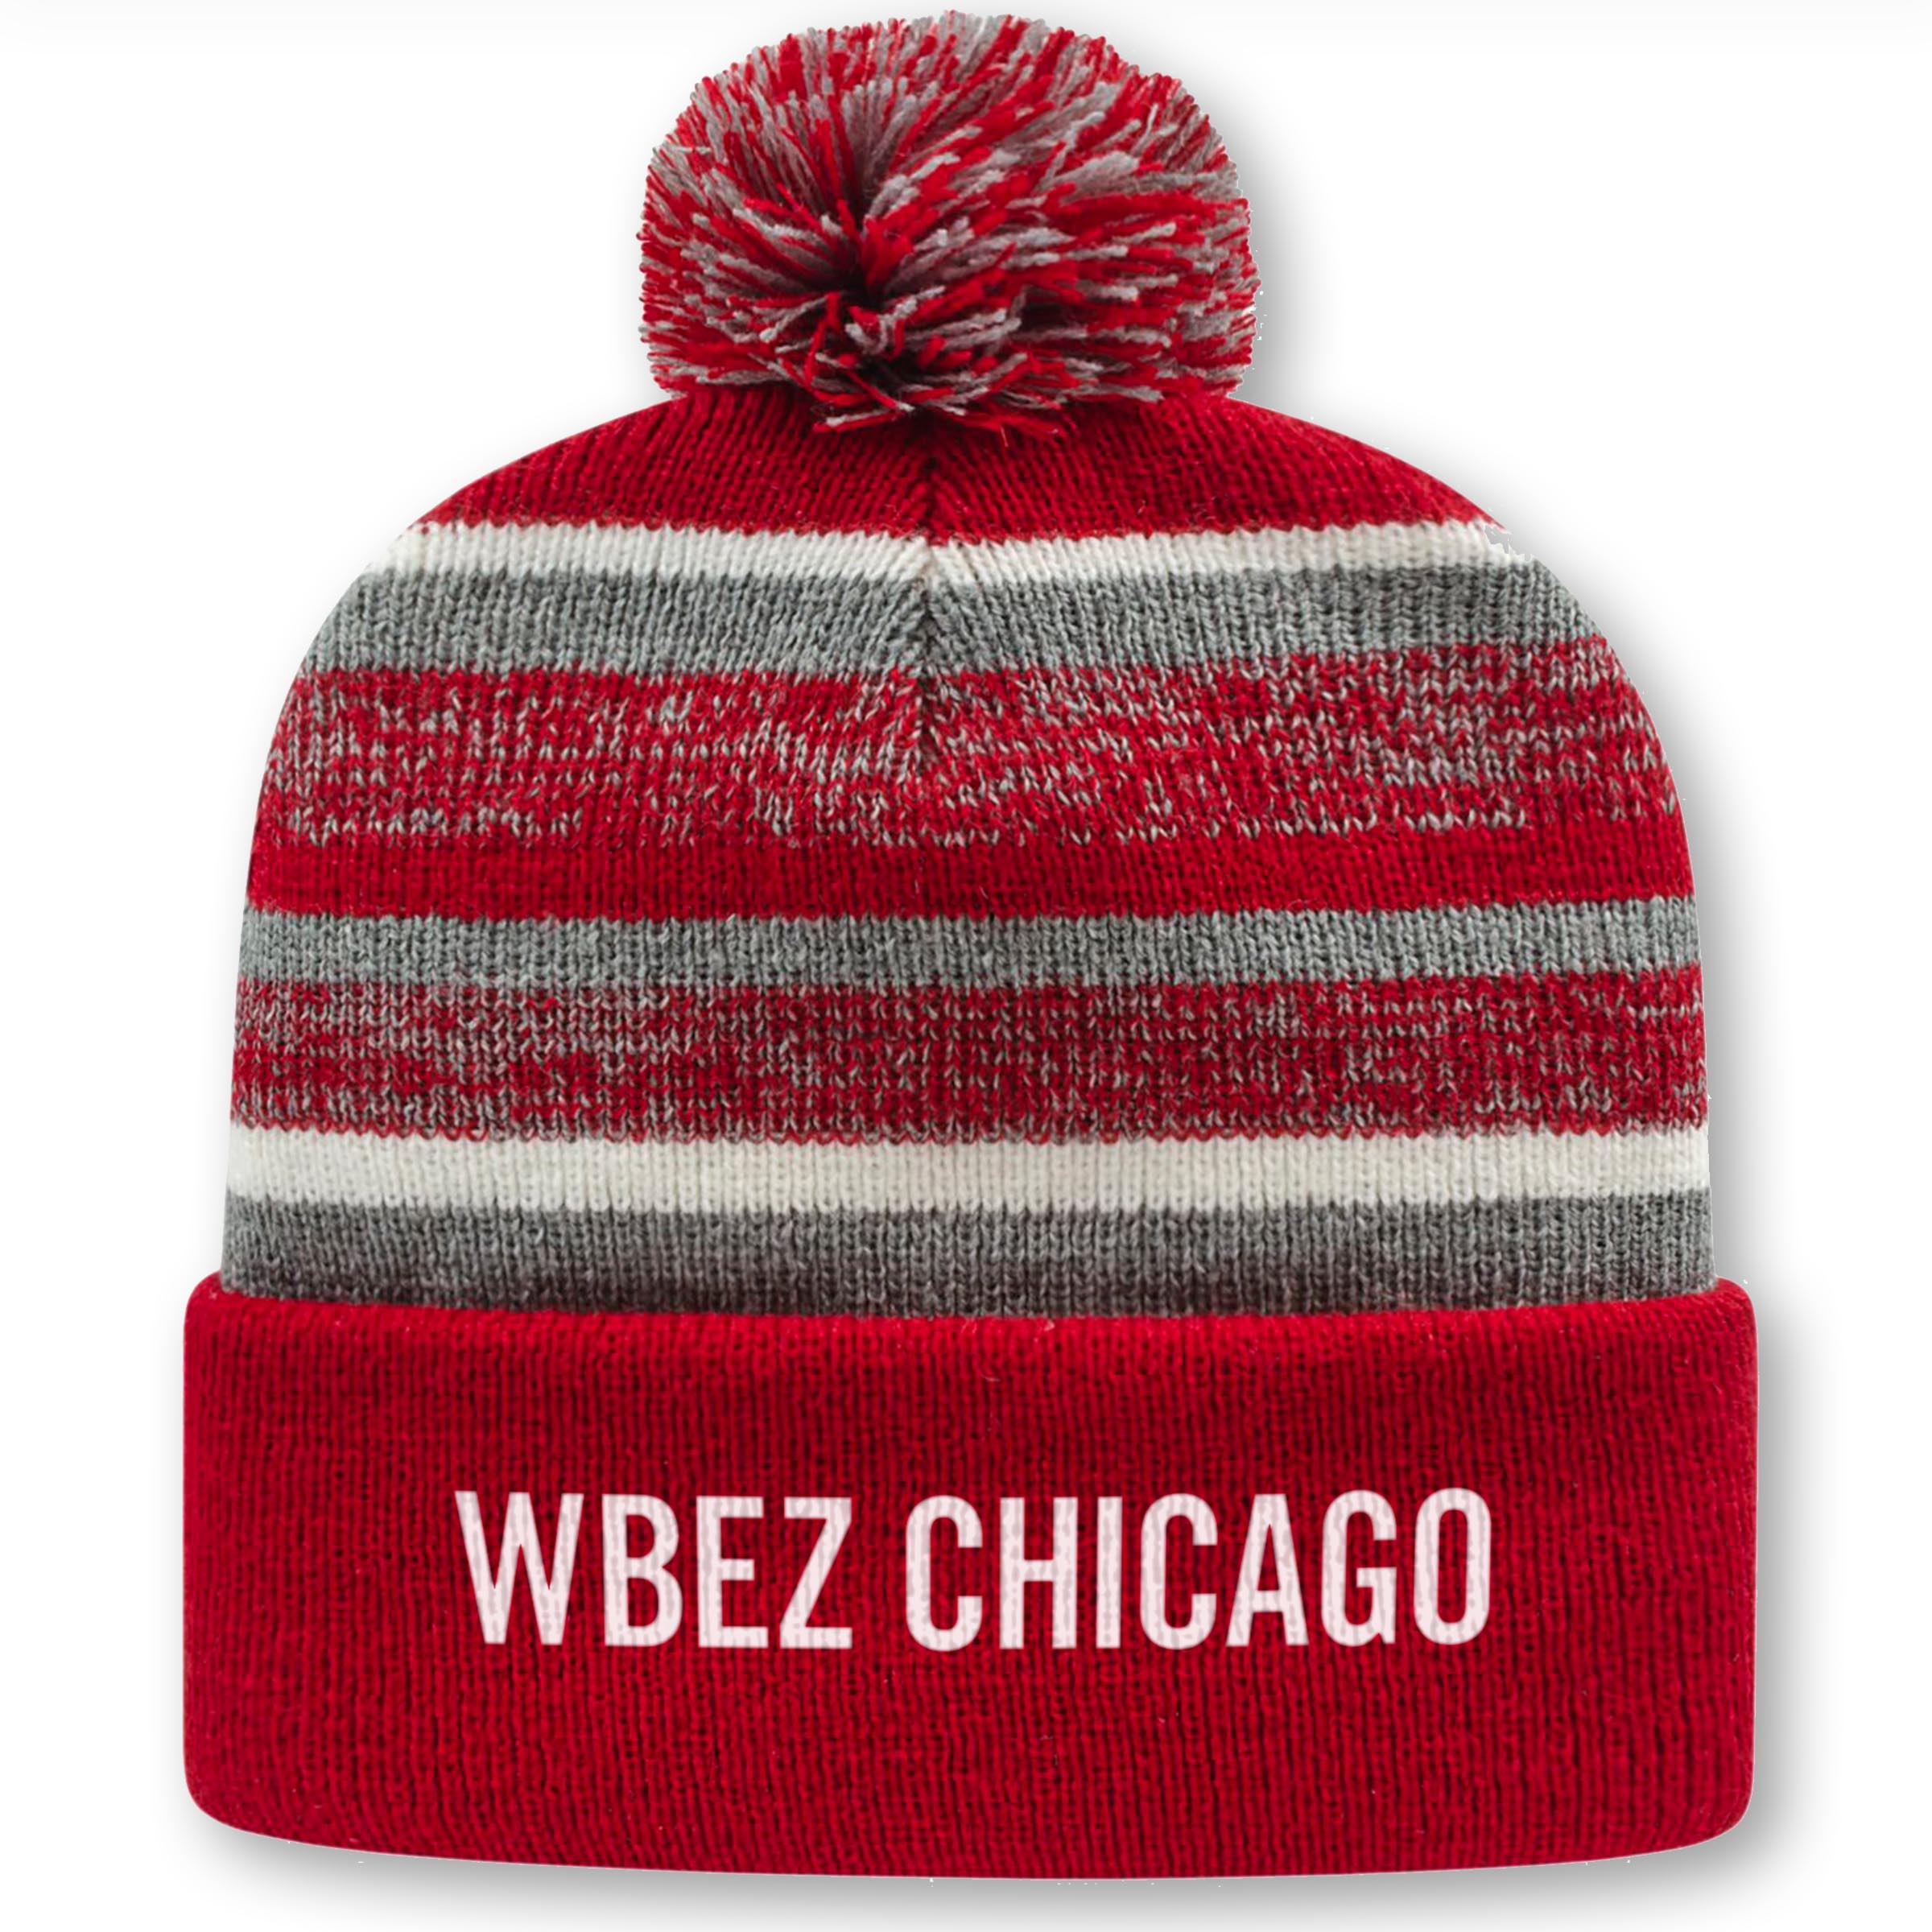 2019 WBEZ Winter Hat